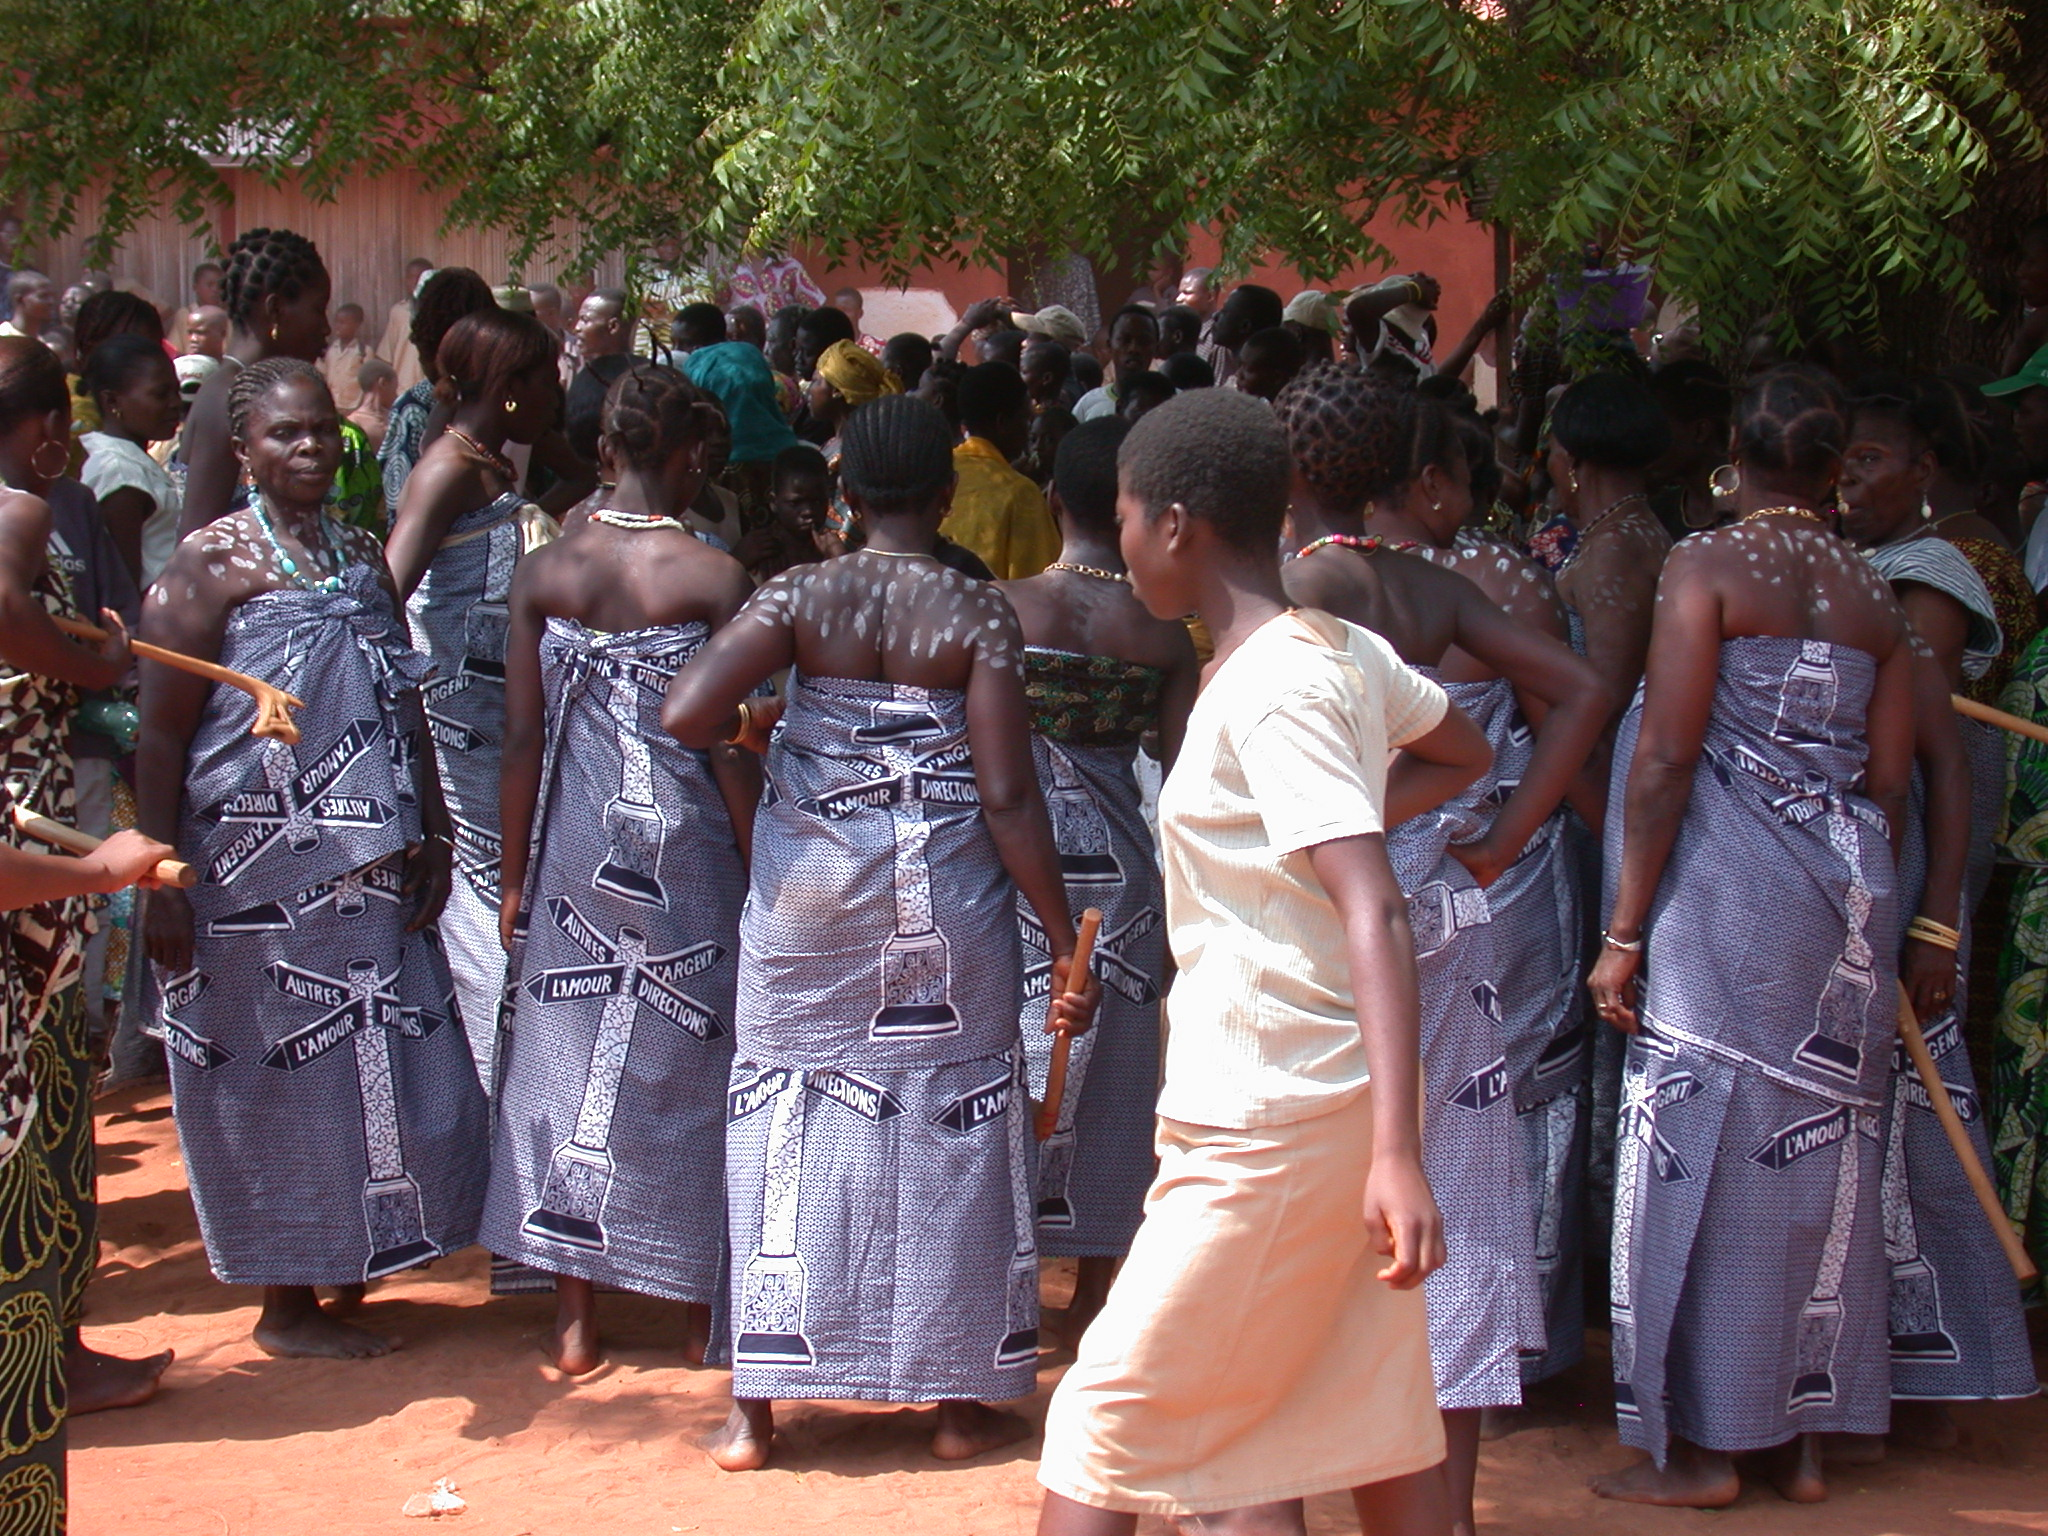 Female Troupe Preparing for Ritual Dancing, Danxome Festival Celebrations at Palace Grounds, Abomey History Museum, Abomey, Benin